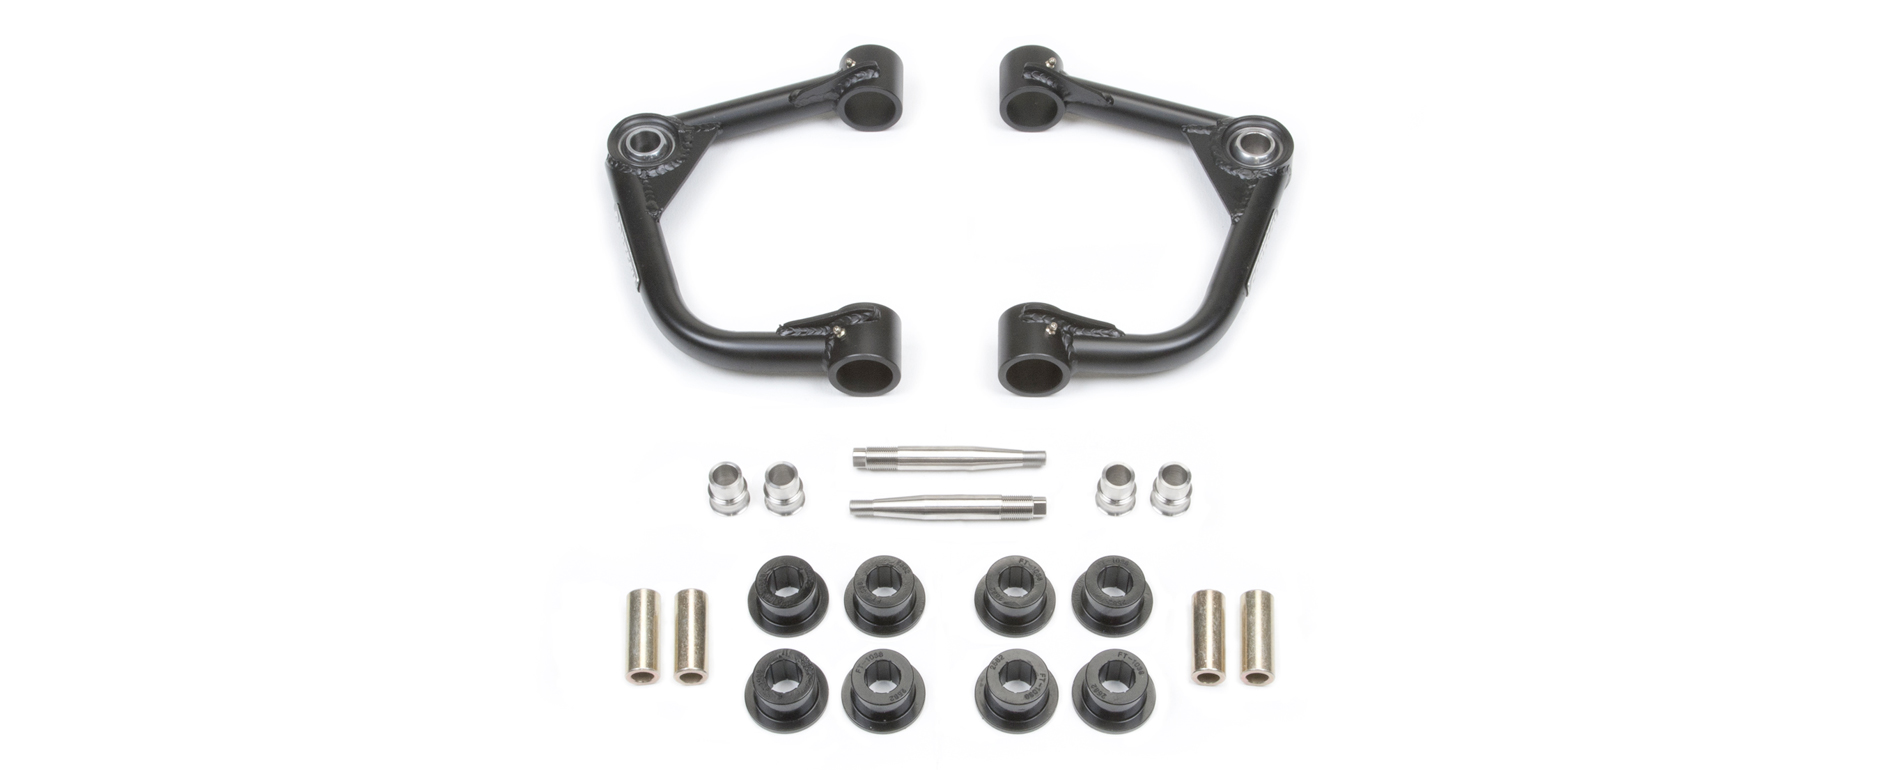 0-6' F150 UNIBALL UCA KIT